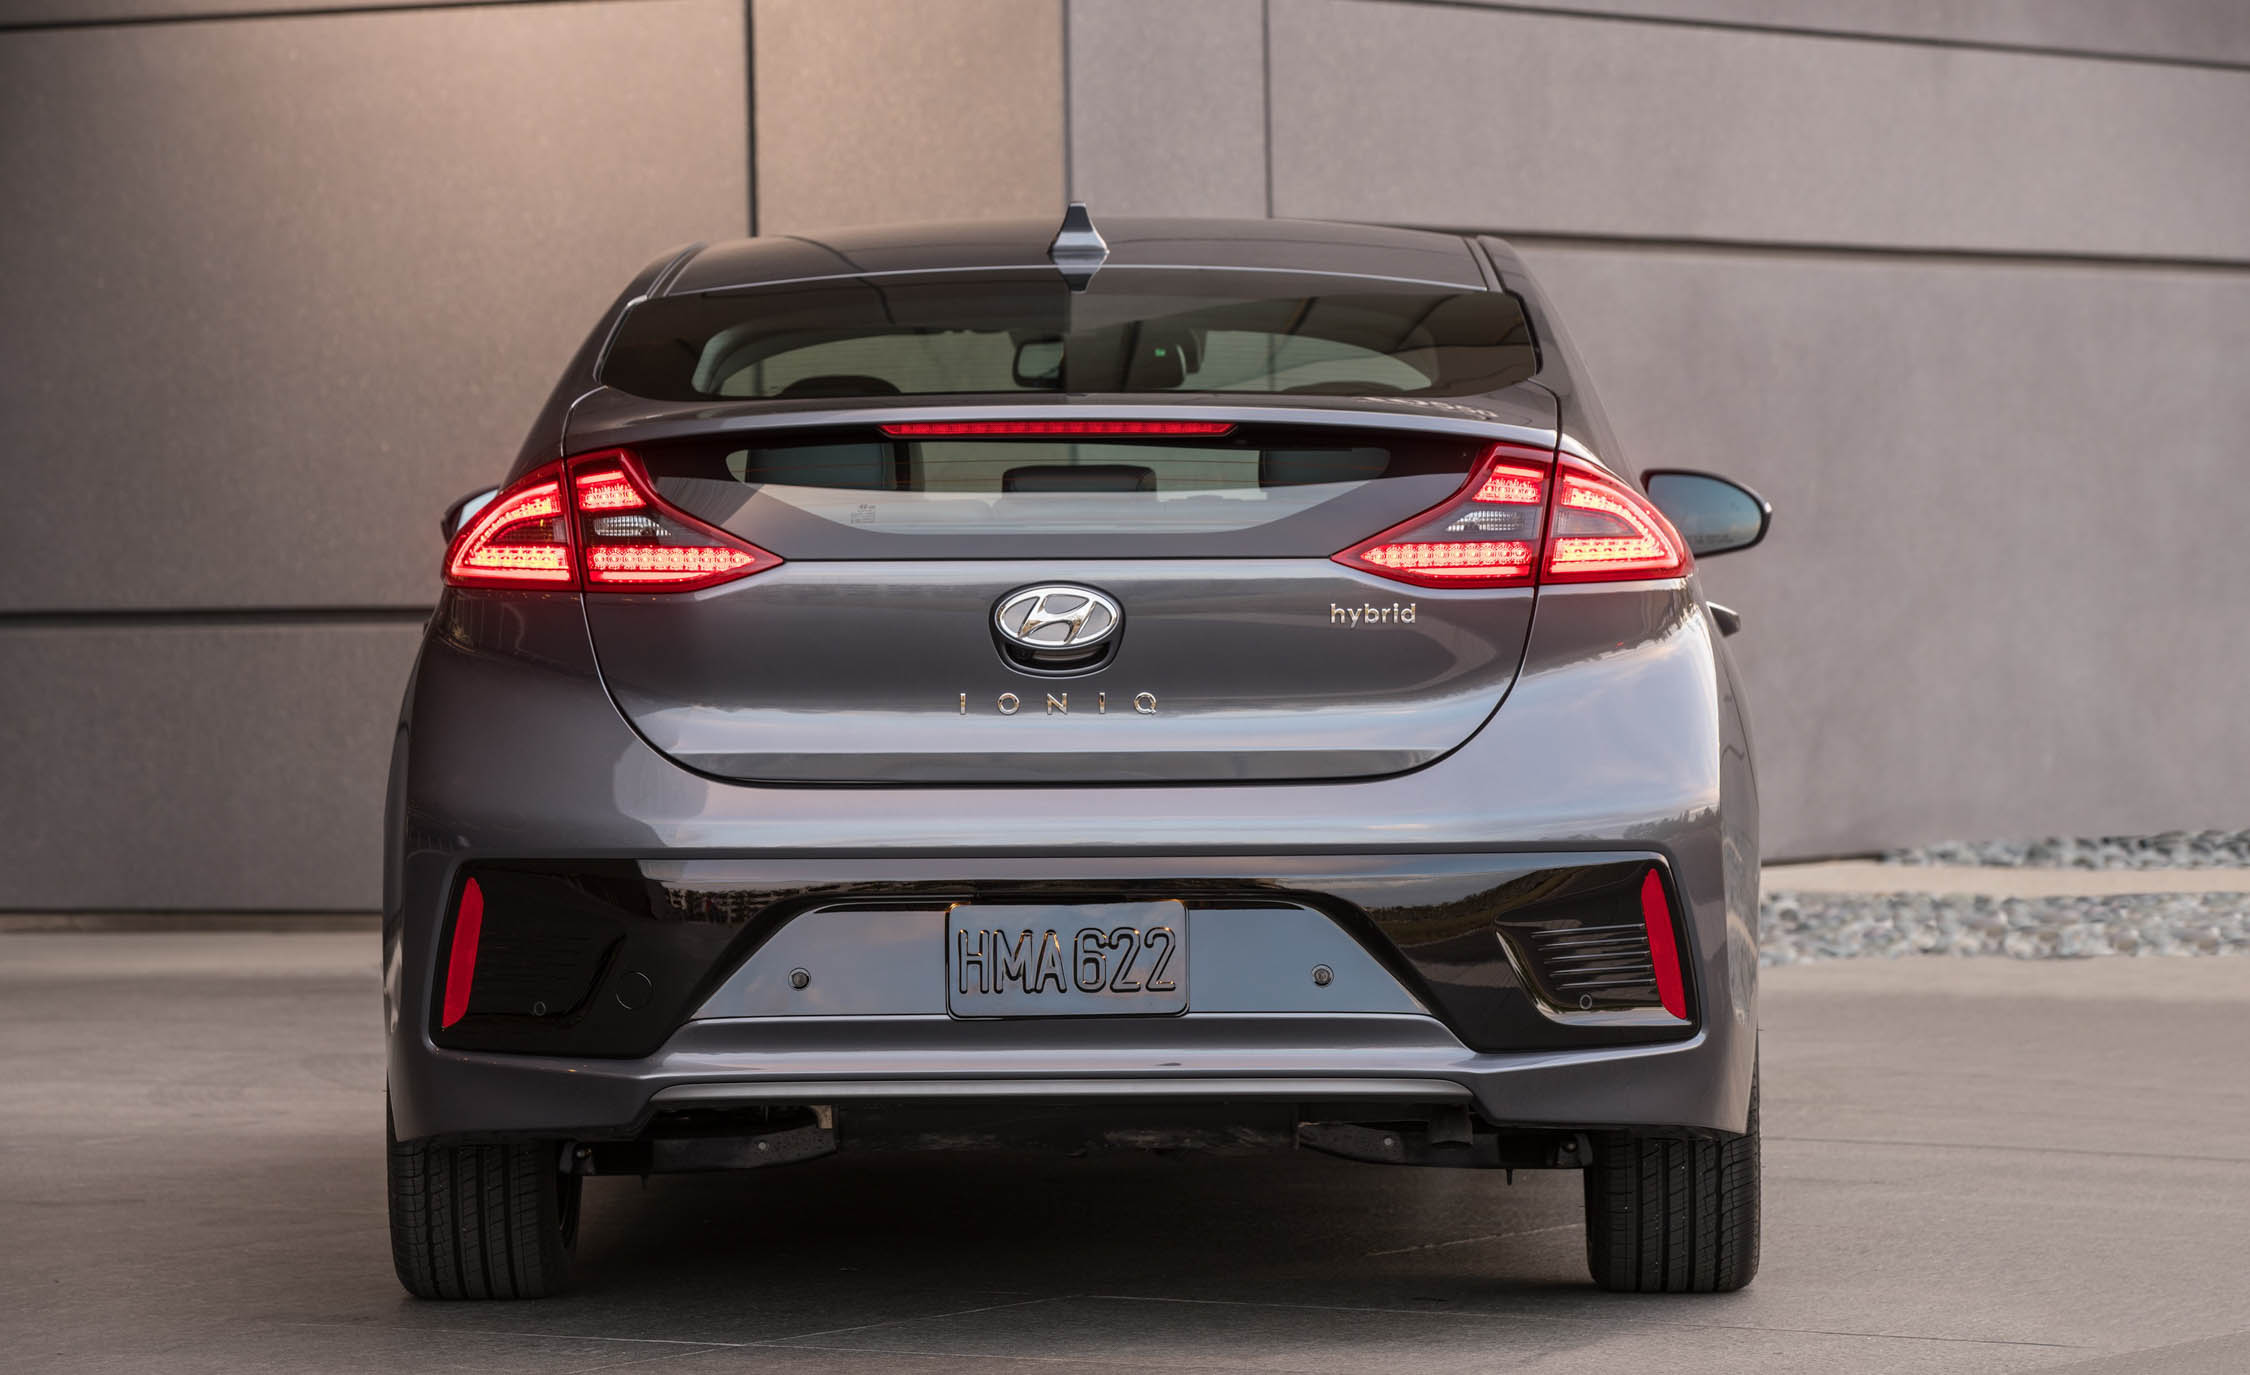 2017 Hyundai Ioniq Hybrid Exterior Rear (Photo 40 of 67)